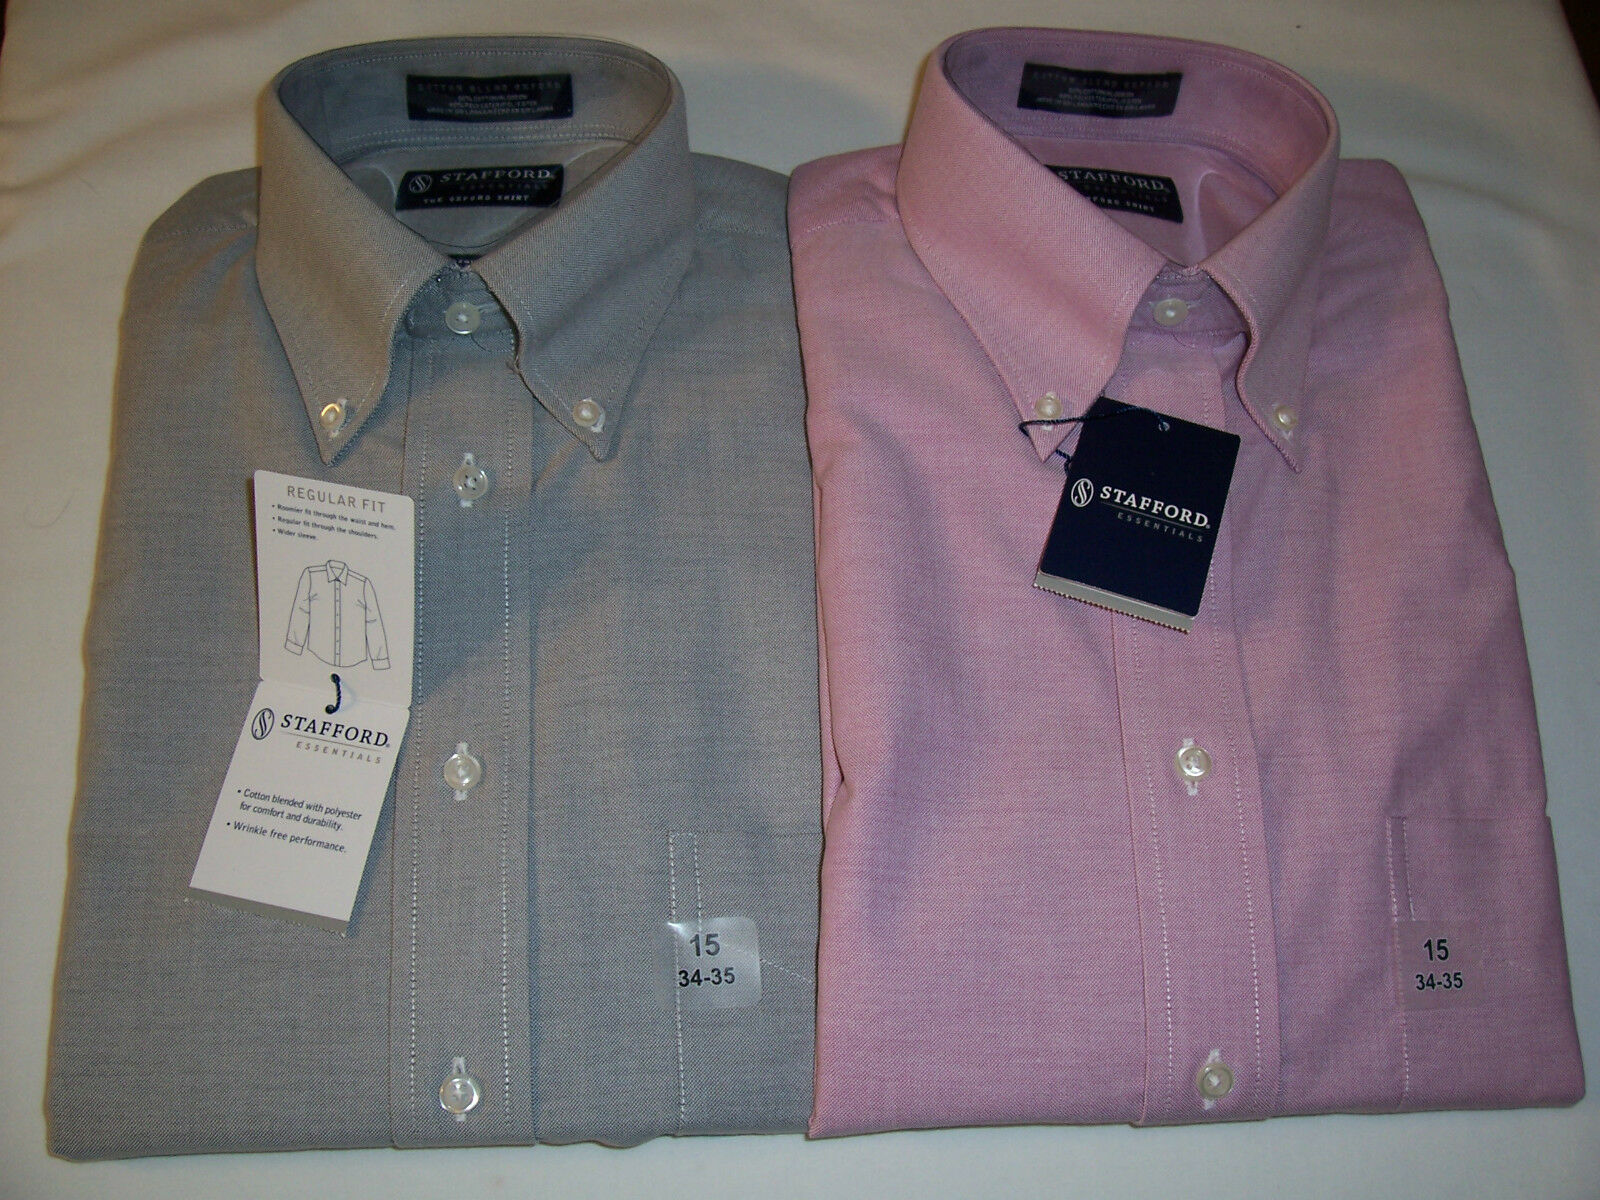 Nwt stafford essentials oxford dress shirt regular fit for Stafford dress shirts fitted